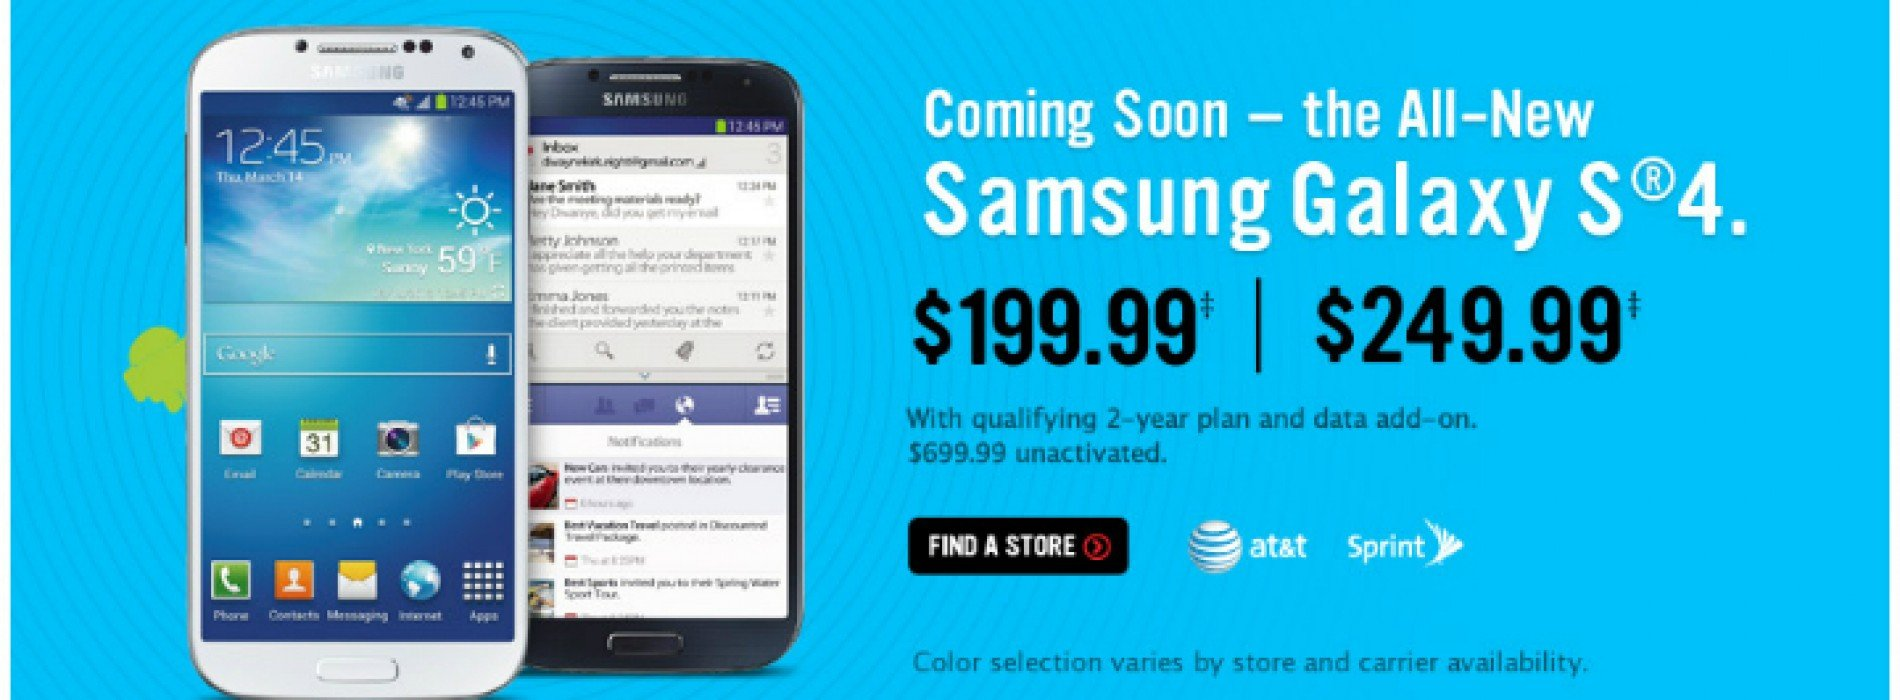 Samsung Galaxy S4 in RadioShack stores April 27th